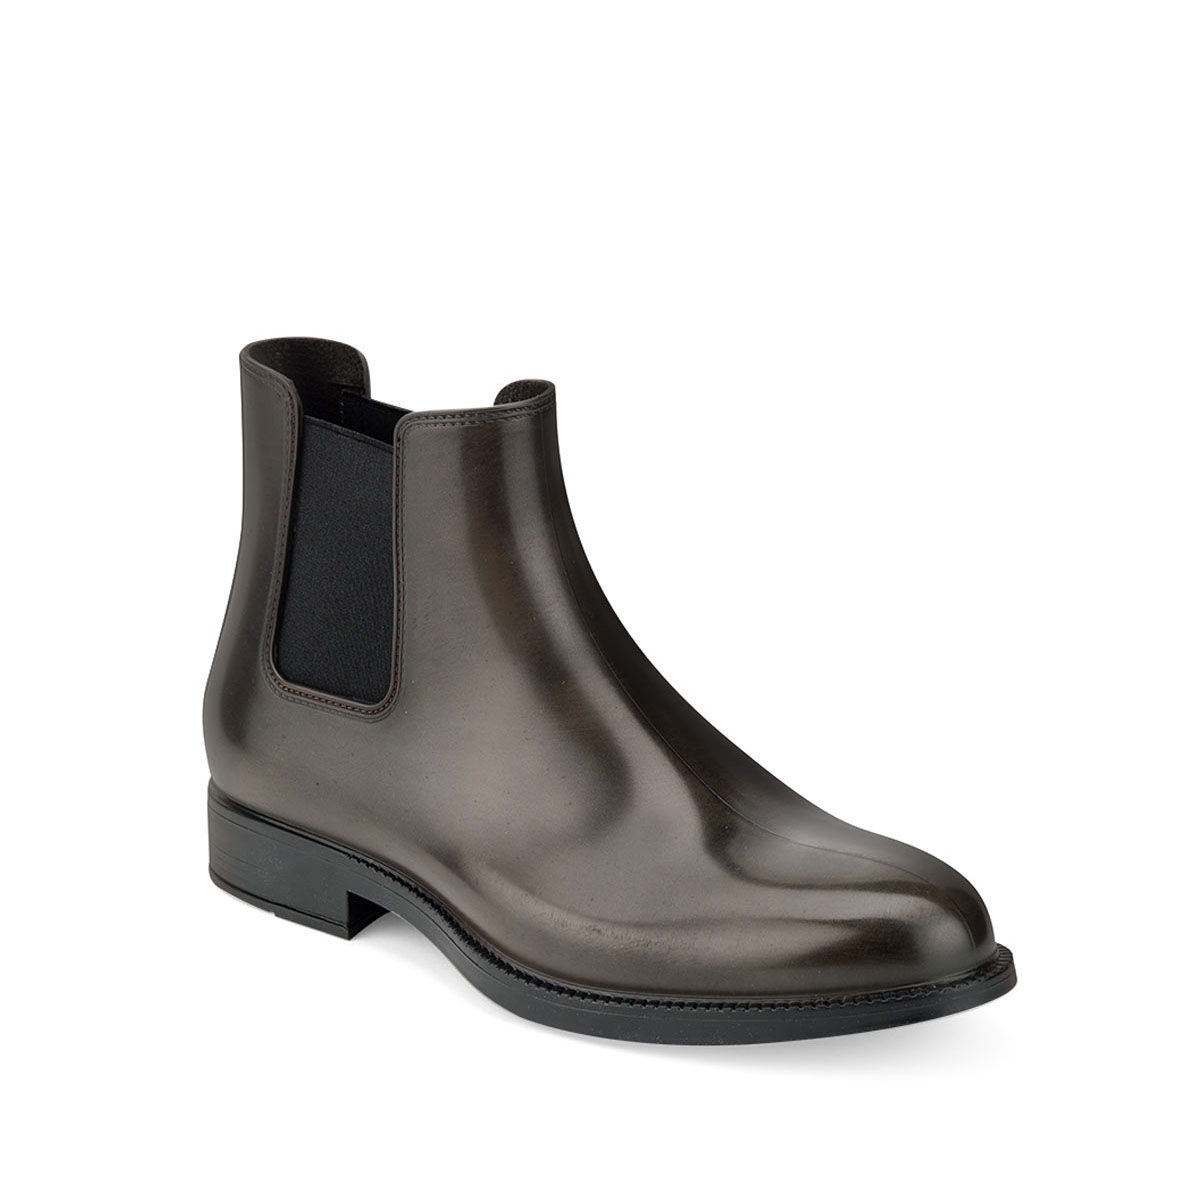 Chelsea boot in brushed effect pvc with elastic band on ankle sides and insole - brown colour